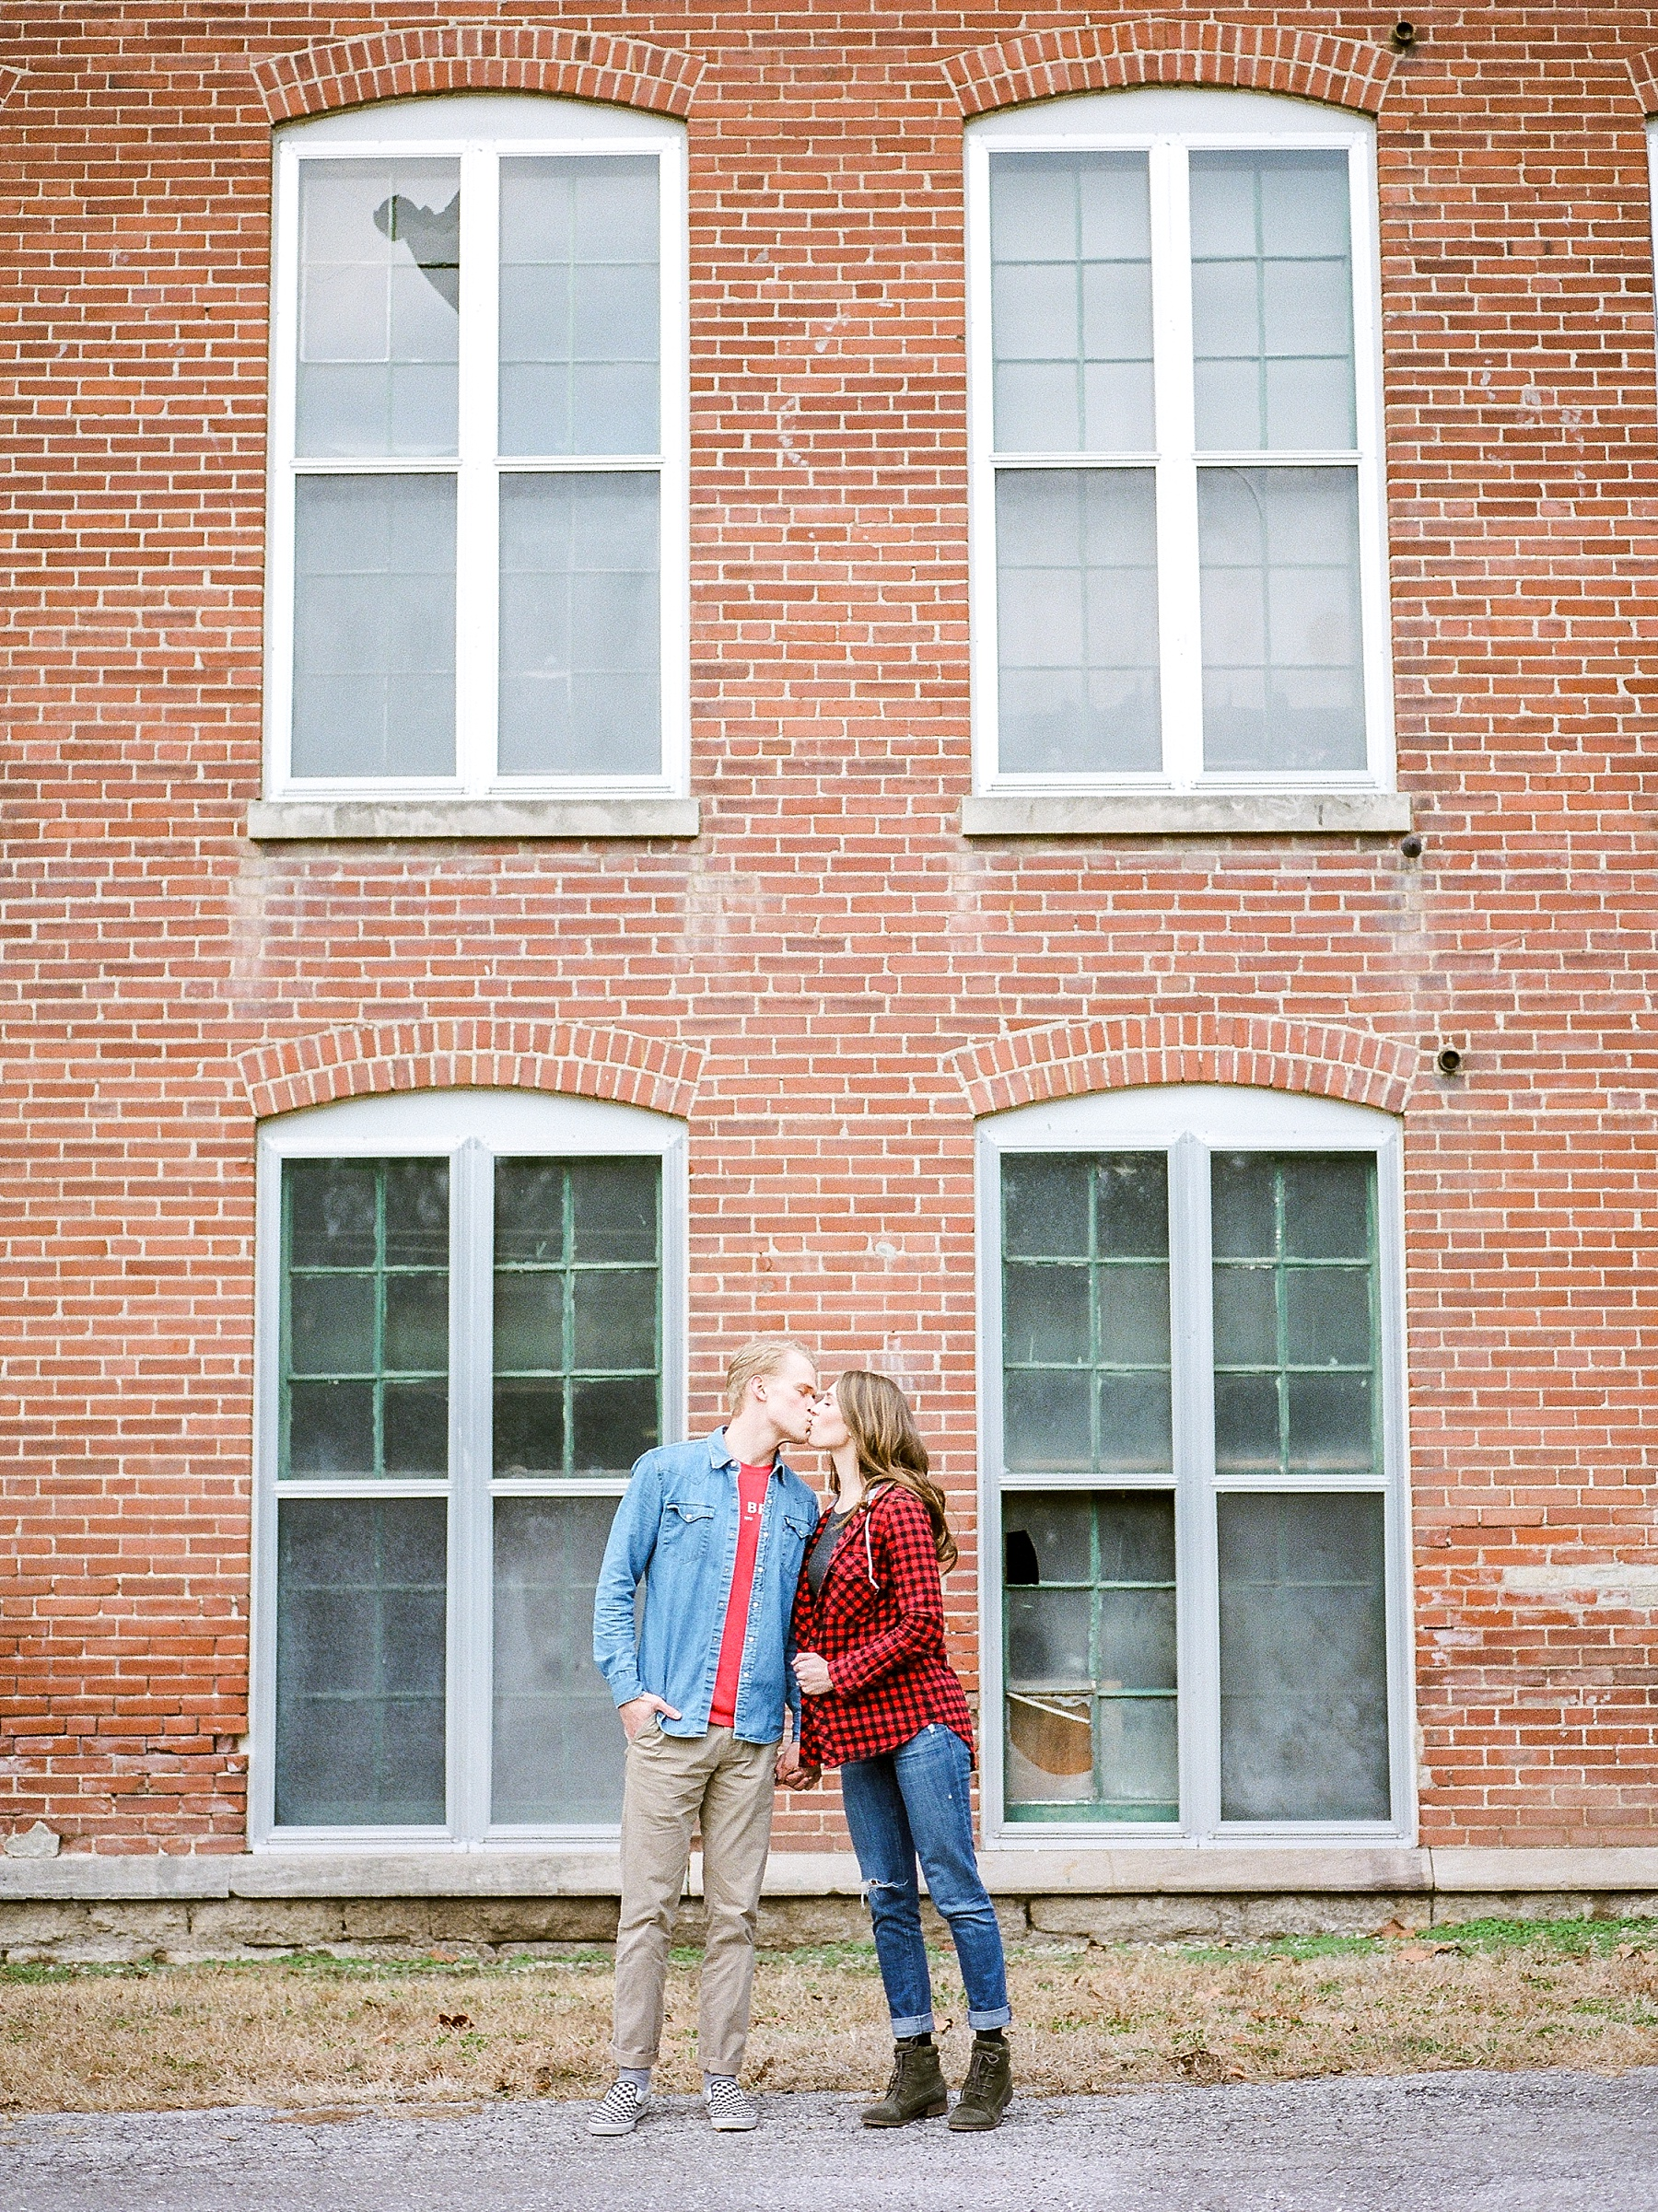 Downtown Jefferson City Engagement Session in Winter at Old Shoe Factory by Kelsi Kliethermes Photography Kansas City Missouri Wedding Photographer_0011.jpg